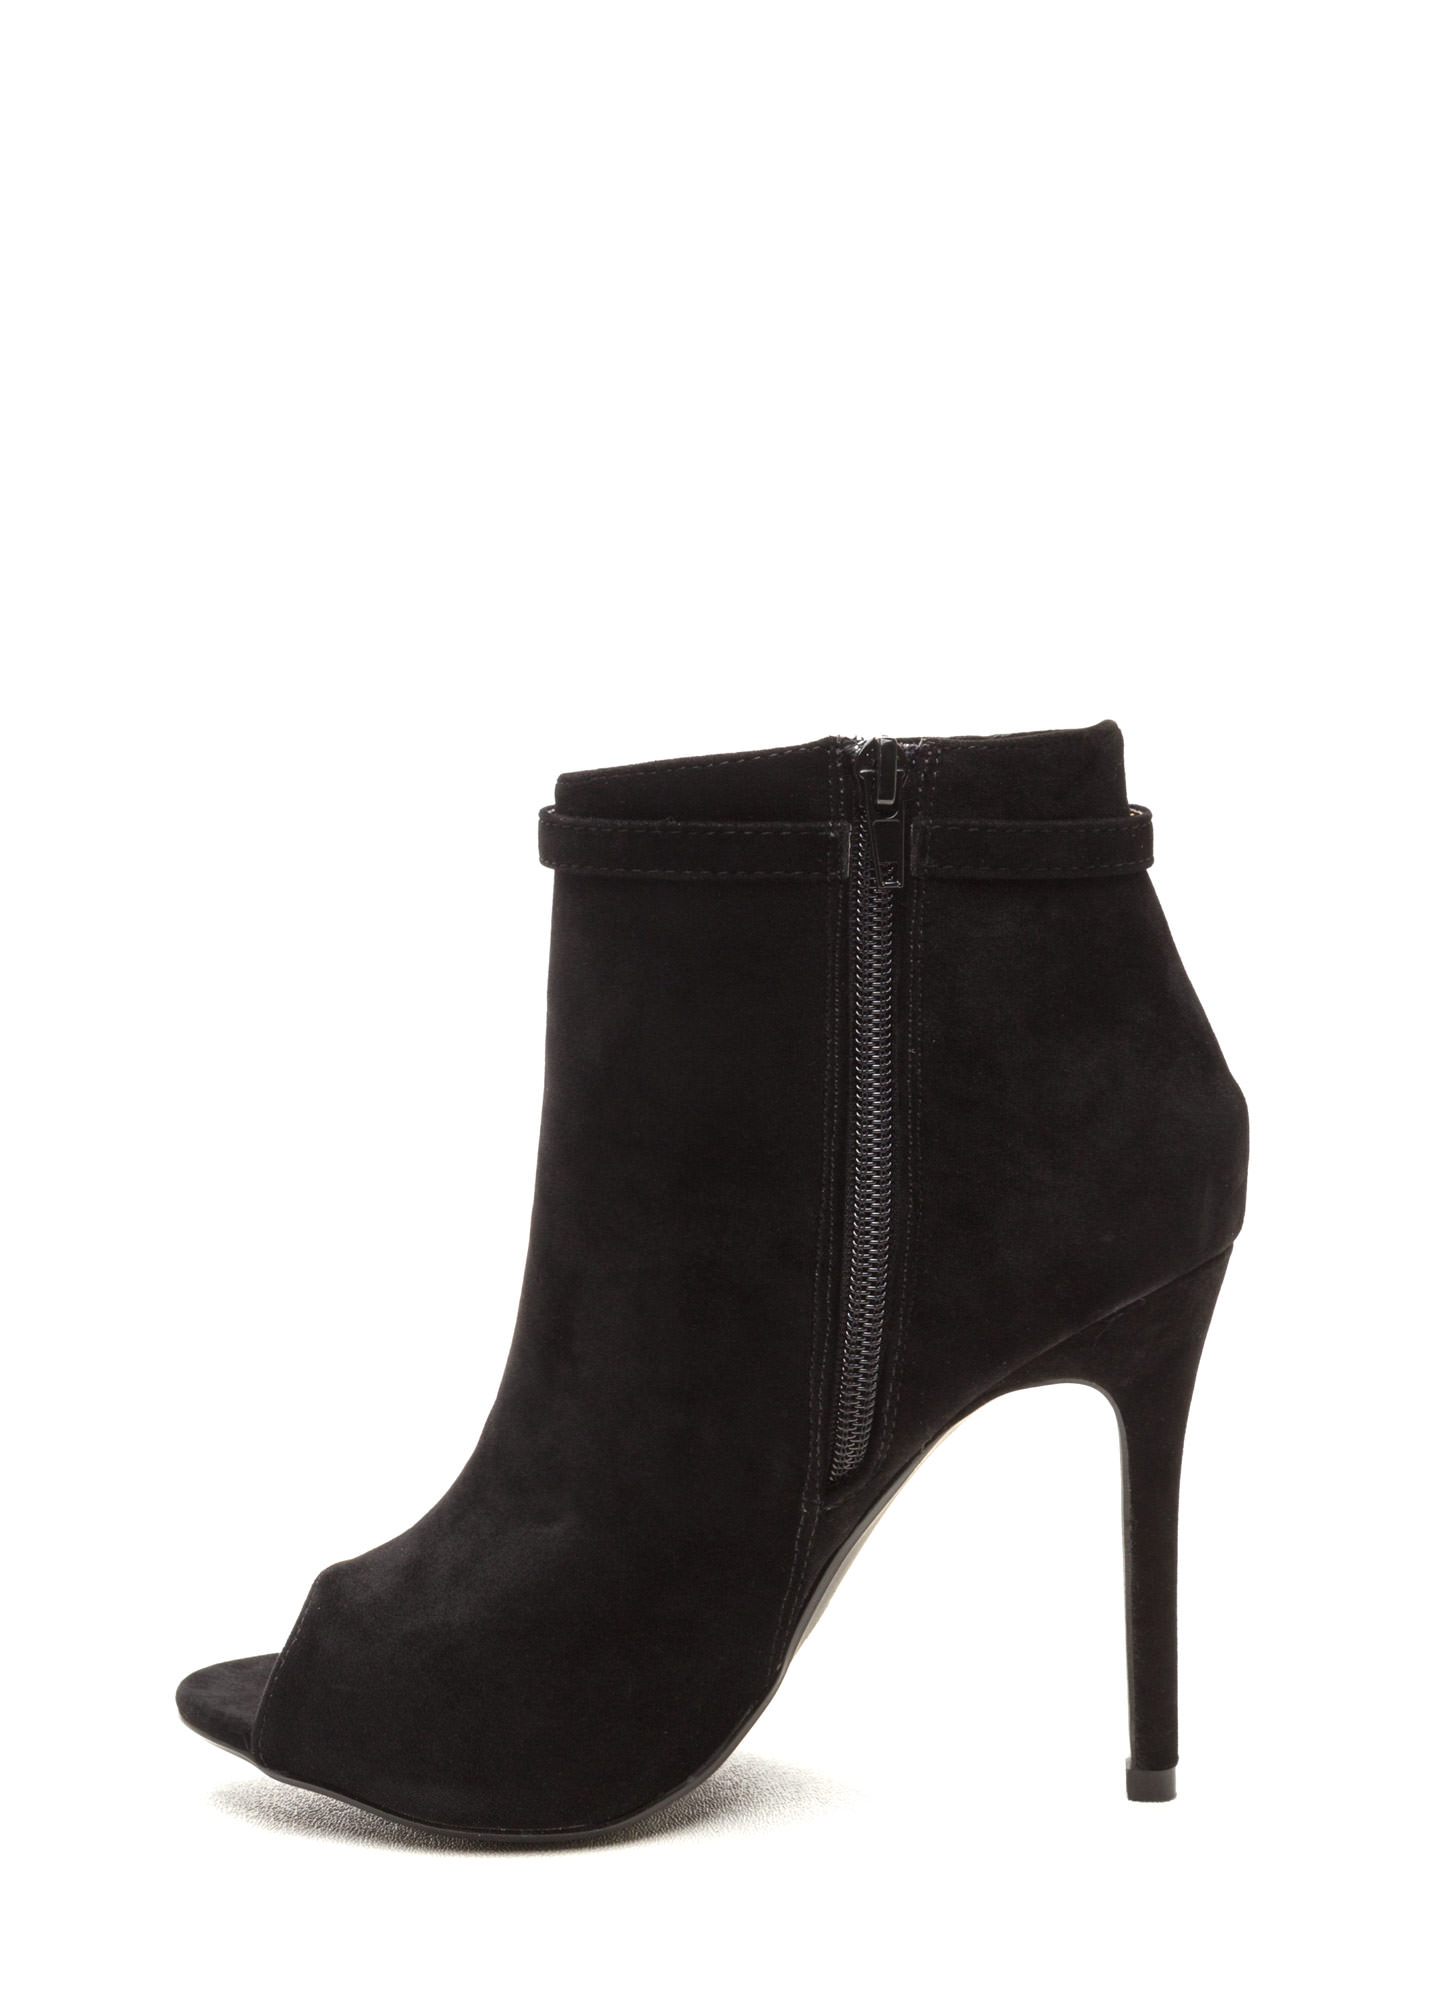 Fluff Up Pom-Pom Peep-Toe Booties BLACK